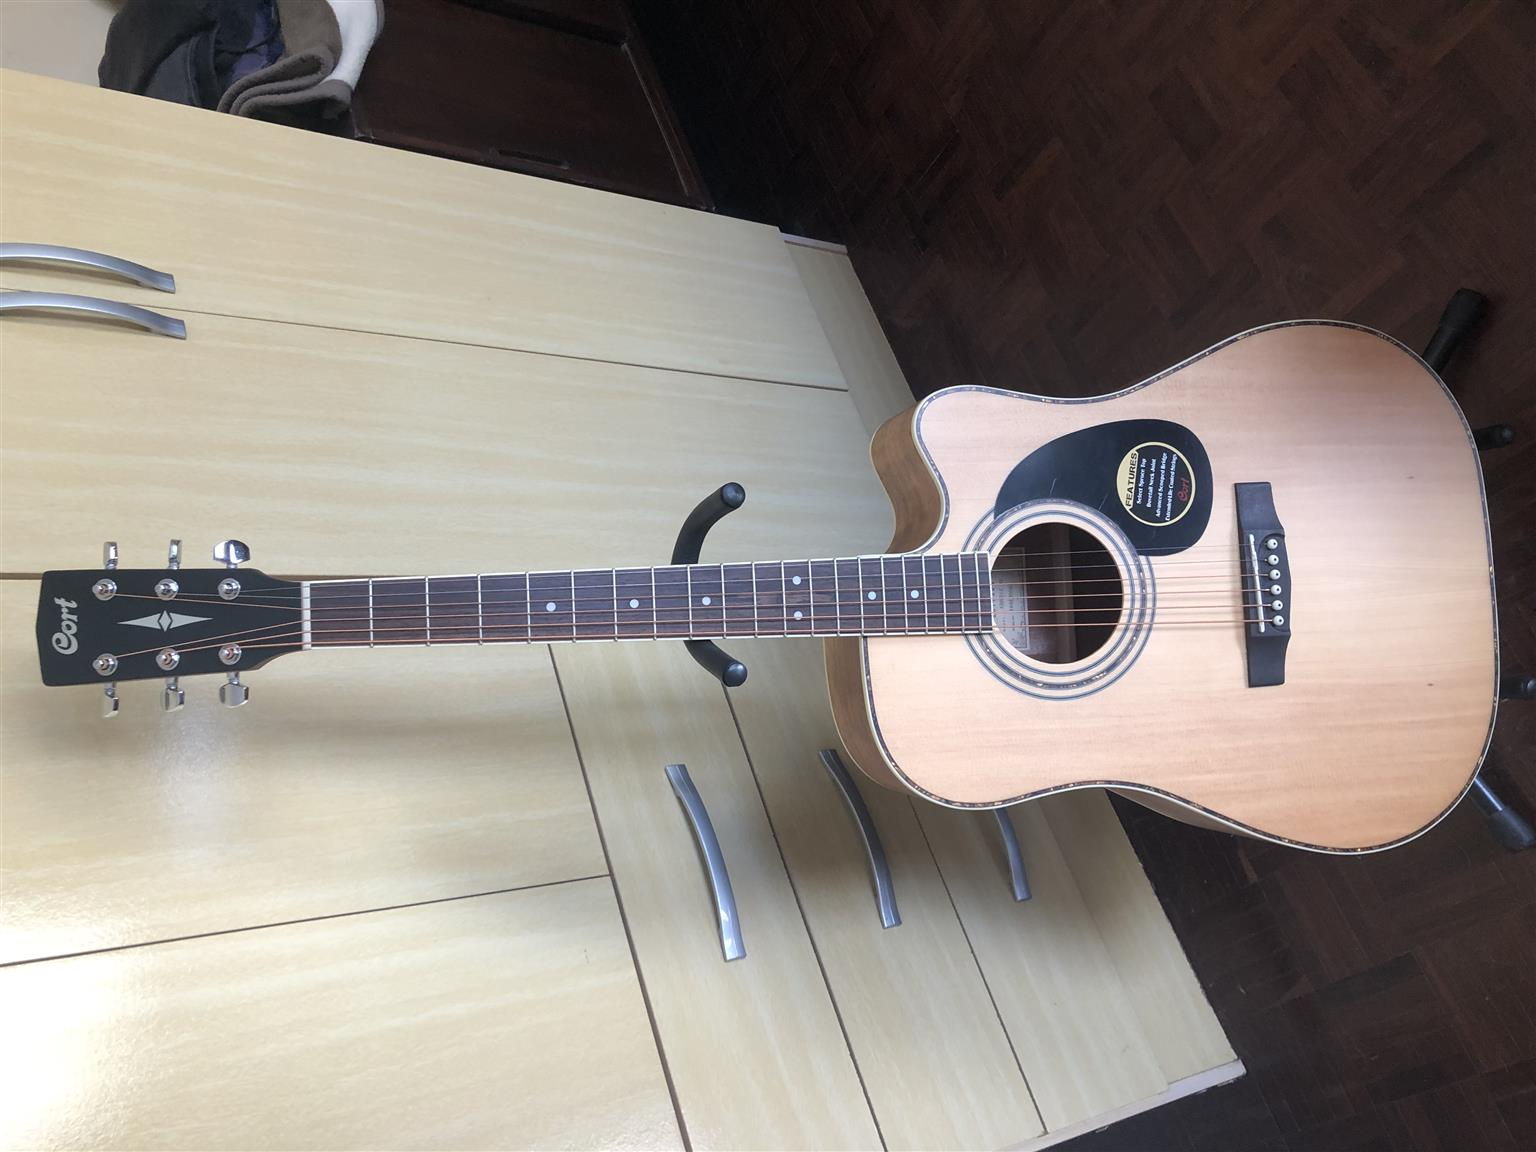 Cort Guitar AD880 CE NS acoustic-electric guitar + bag + guitar stand